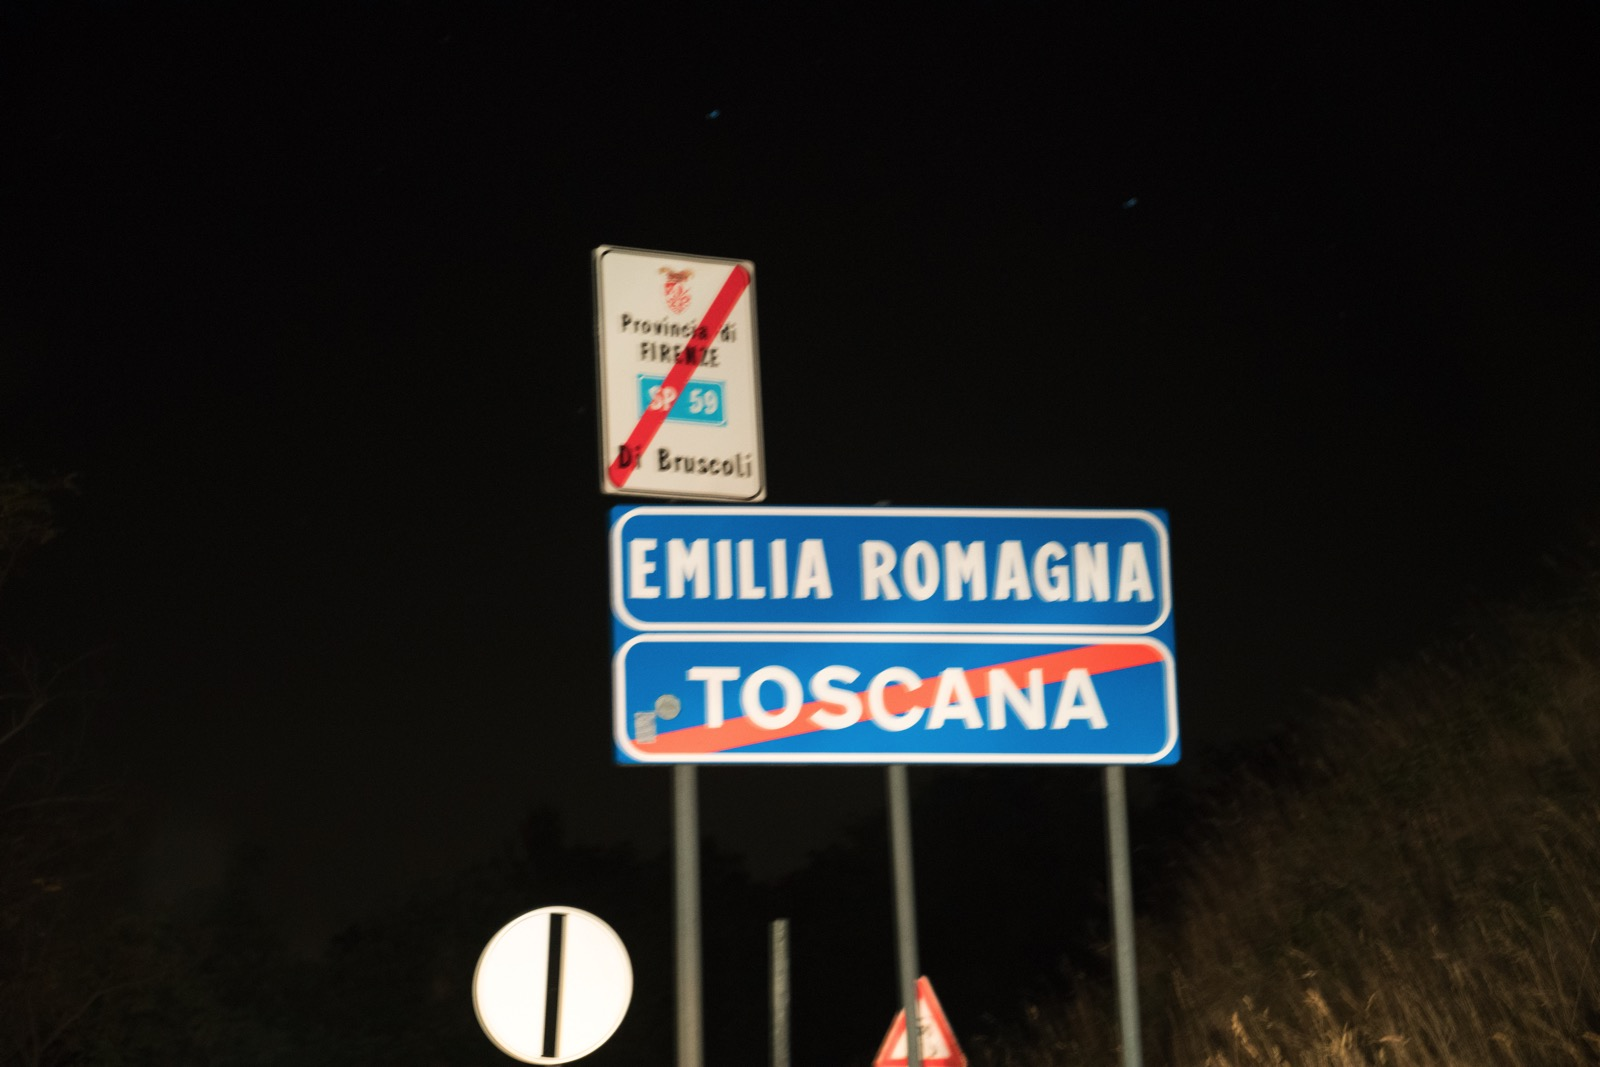 Leaving Tuscany and entering Emilia-Romagna, our home for most of the rest of the trip. (Toscana, Italy.)